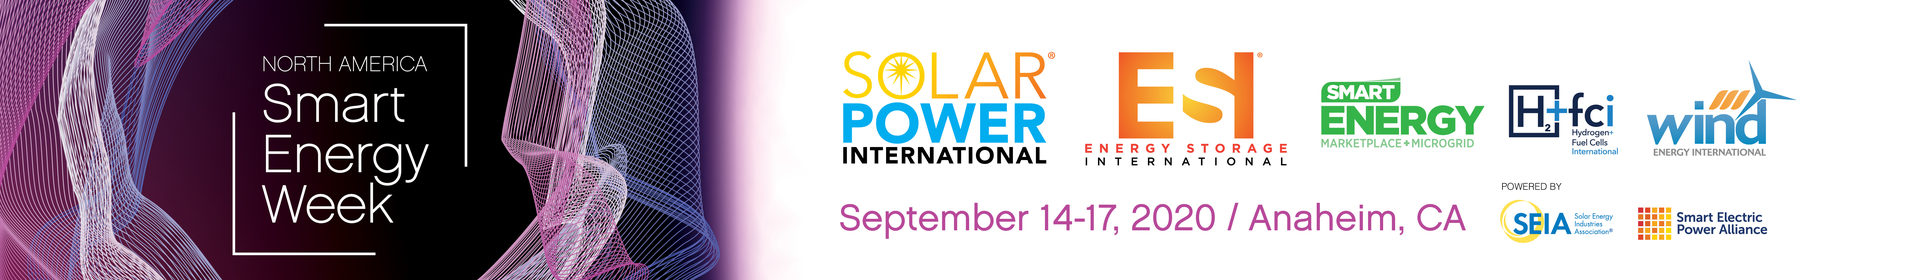 Solar Power International, Energy Storage International, and NASEW 2020 Event Banner